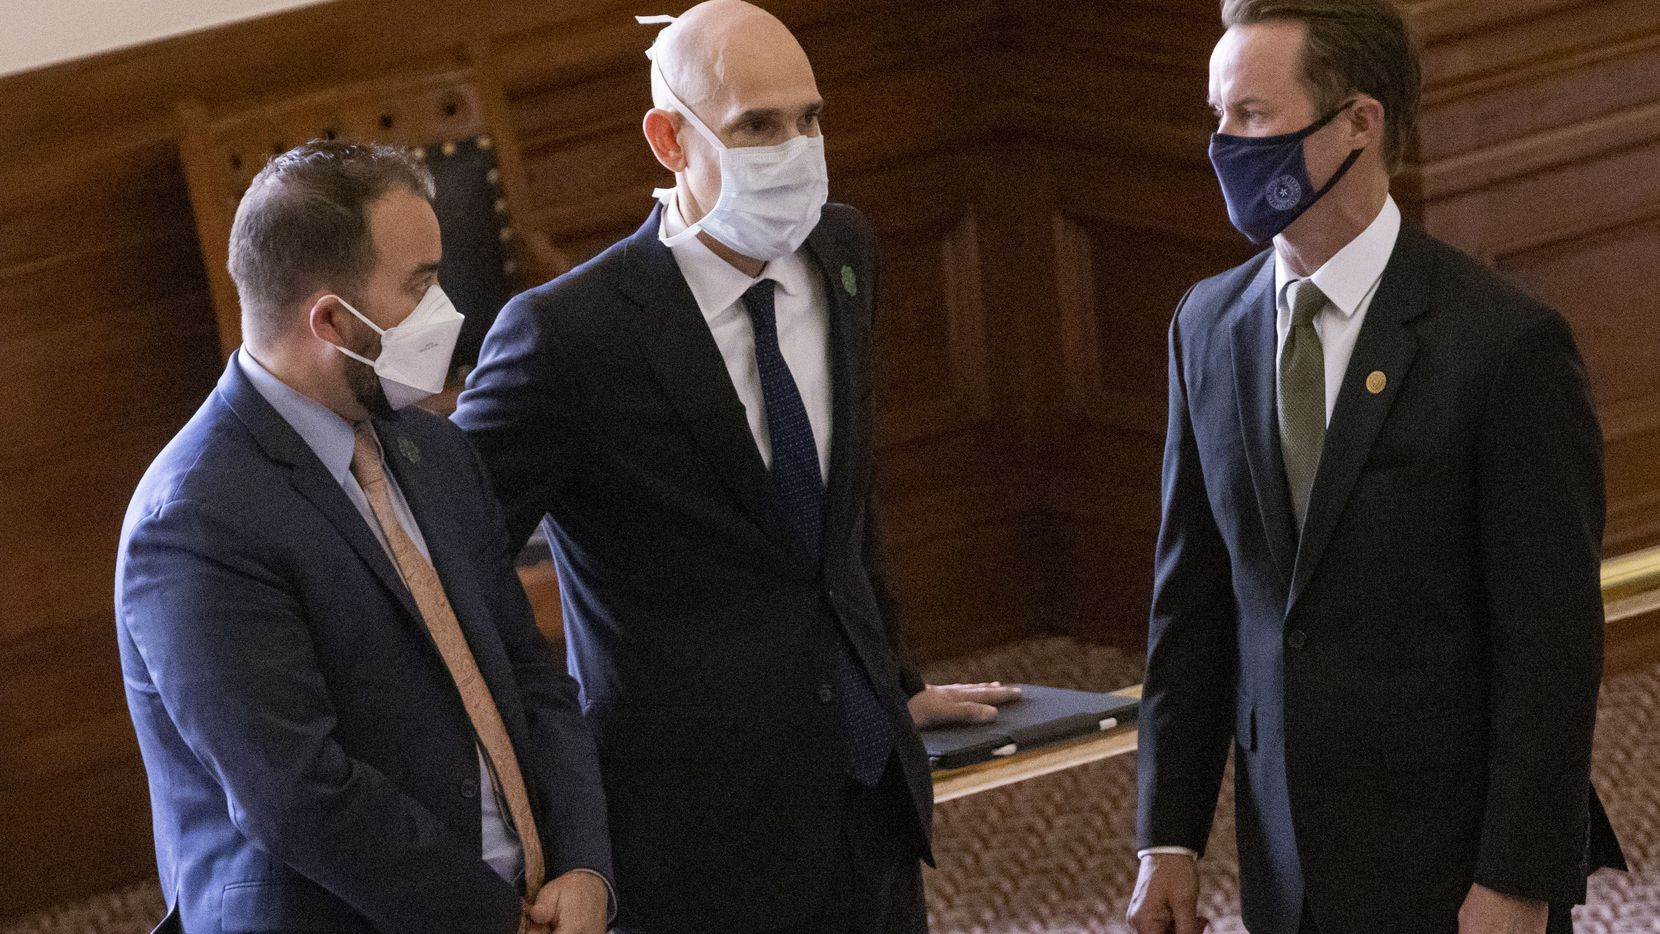 The House is lifting a requirement that members wear masks while on the floor and in committee rooms. In a file photo from mid-March, Speaker Dade Phelan (right) speaks with Reps. Joe Moody (left) and Greg Bonnen.